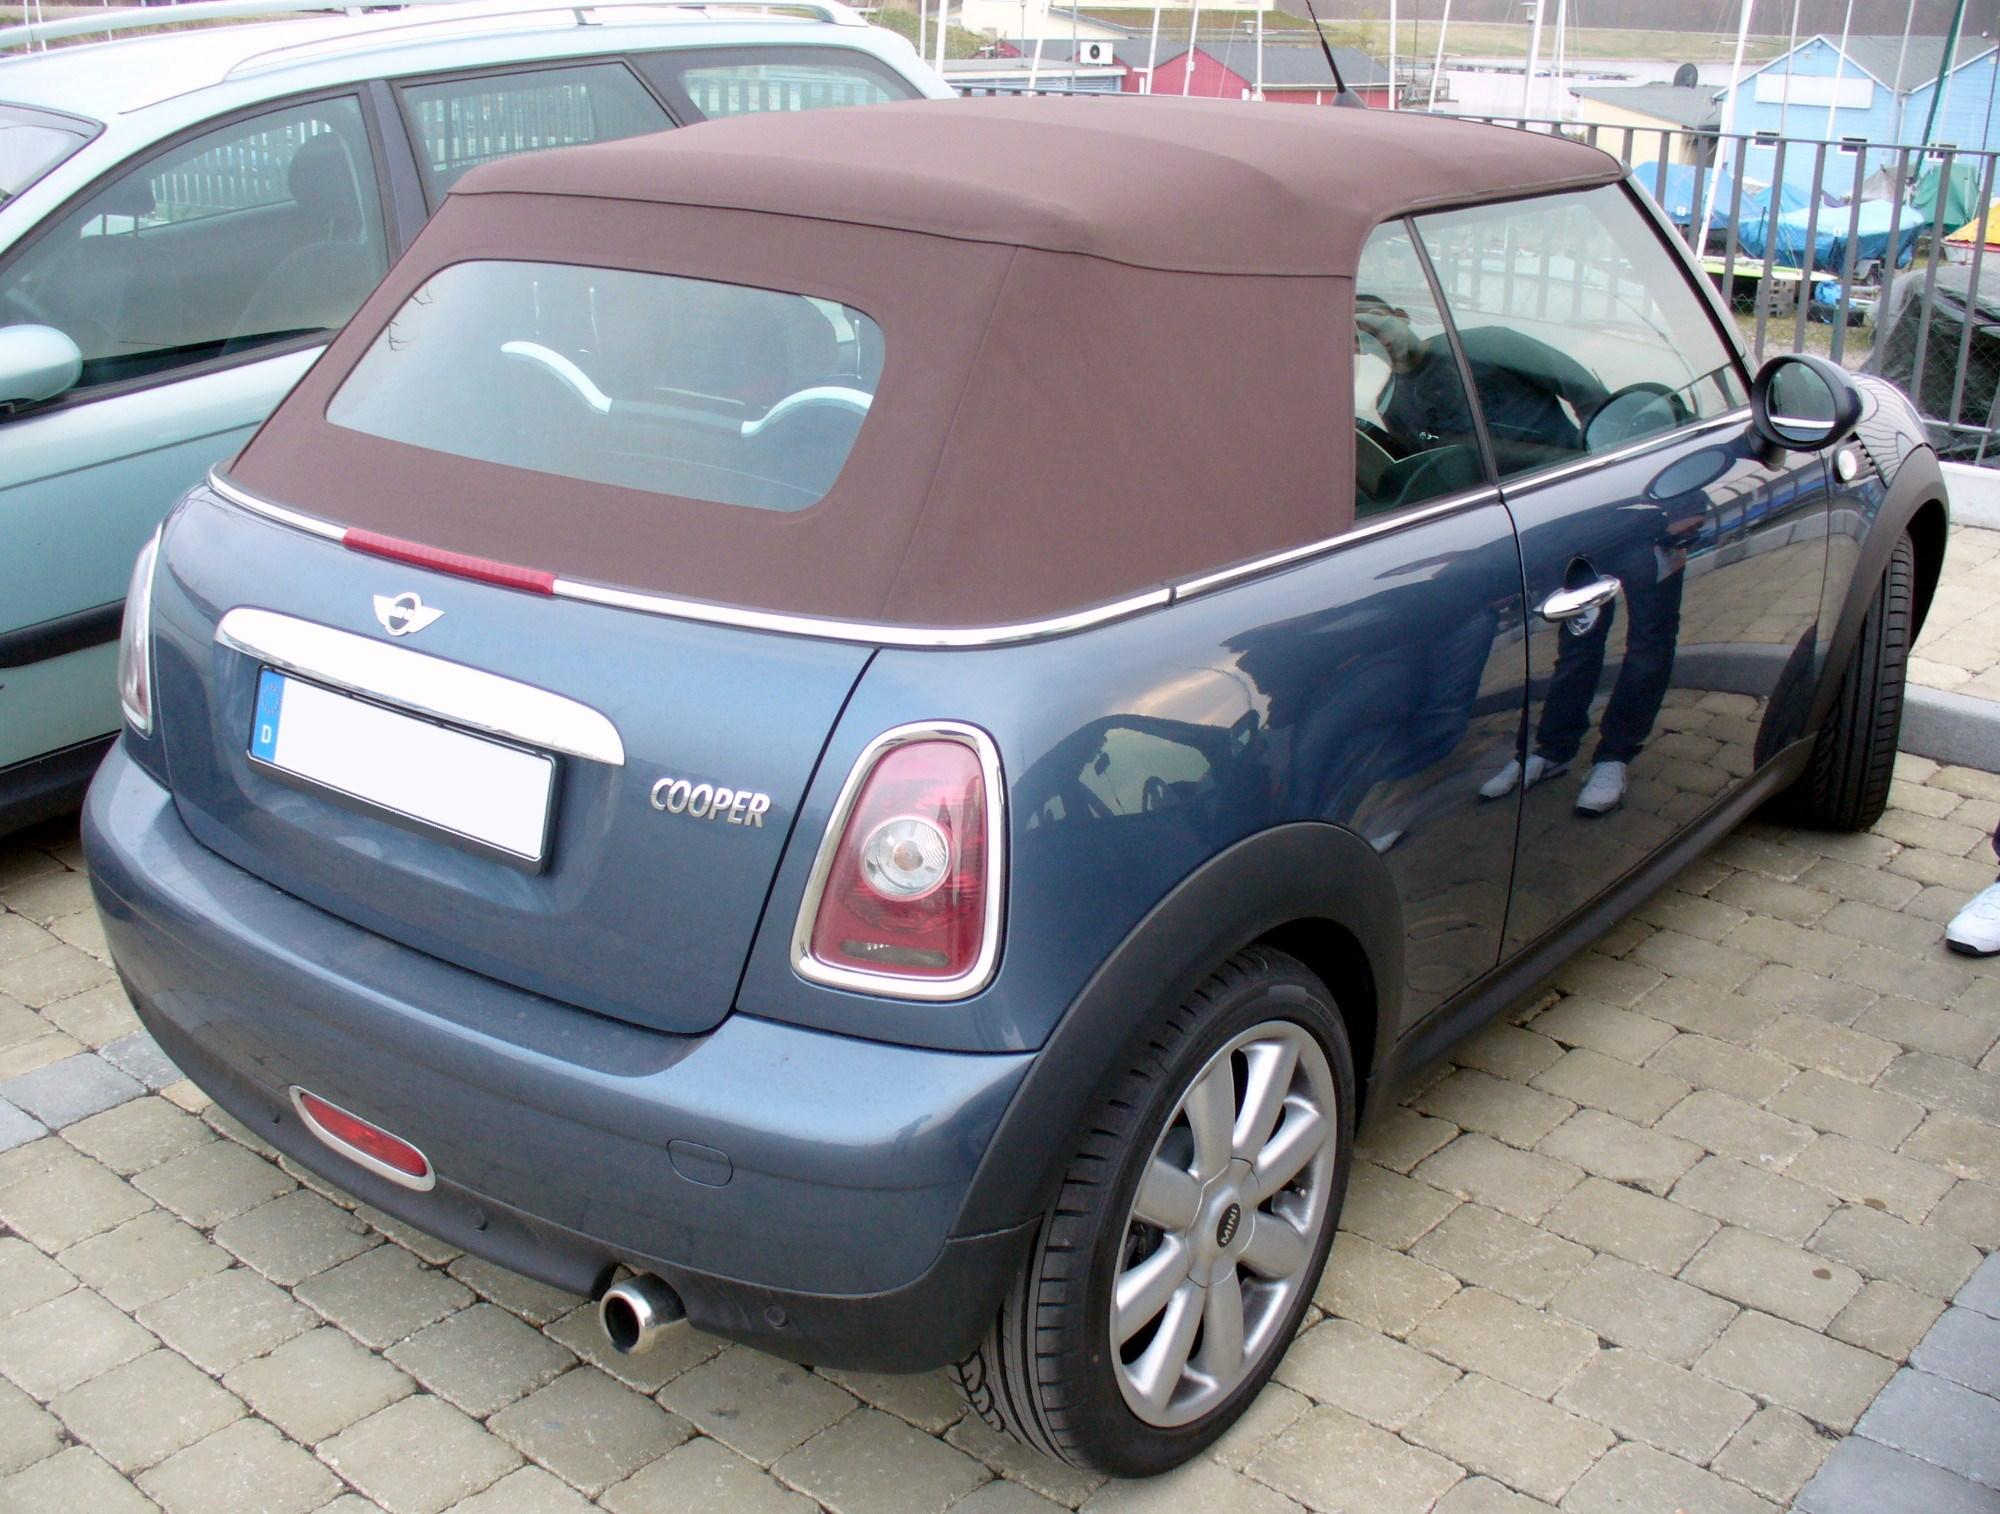 Blue Mini Cooper Related Imagesstart 450 Weili Automotive Network